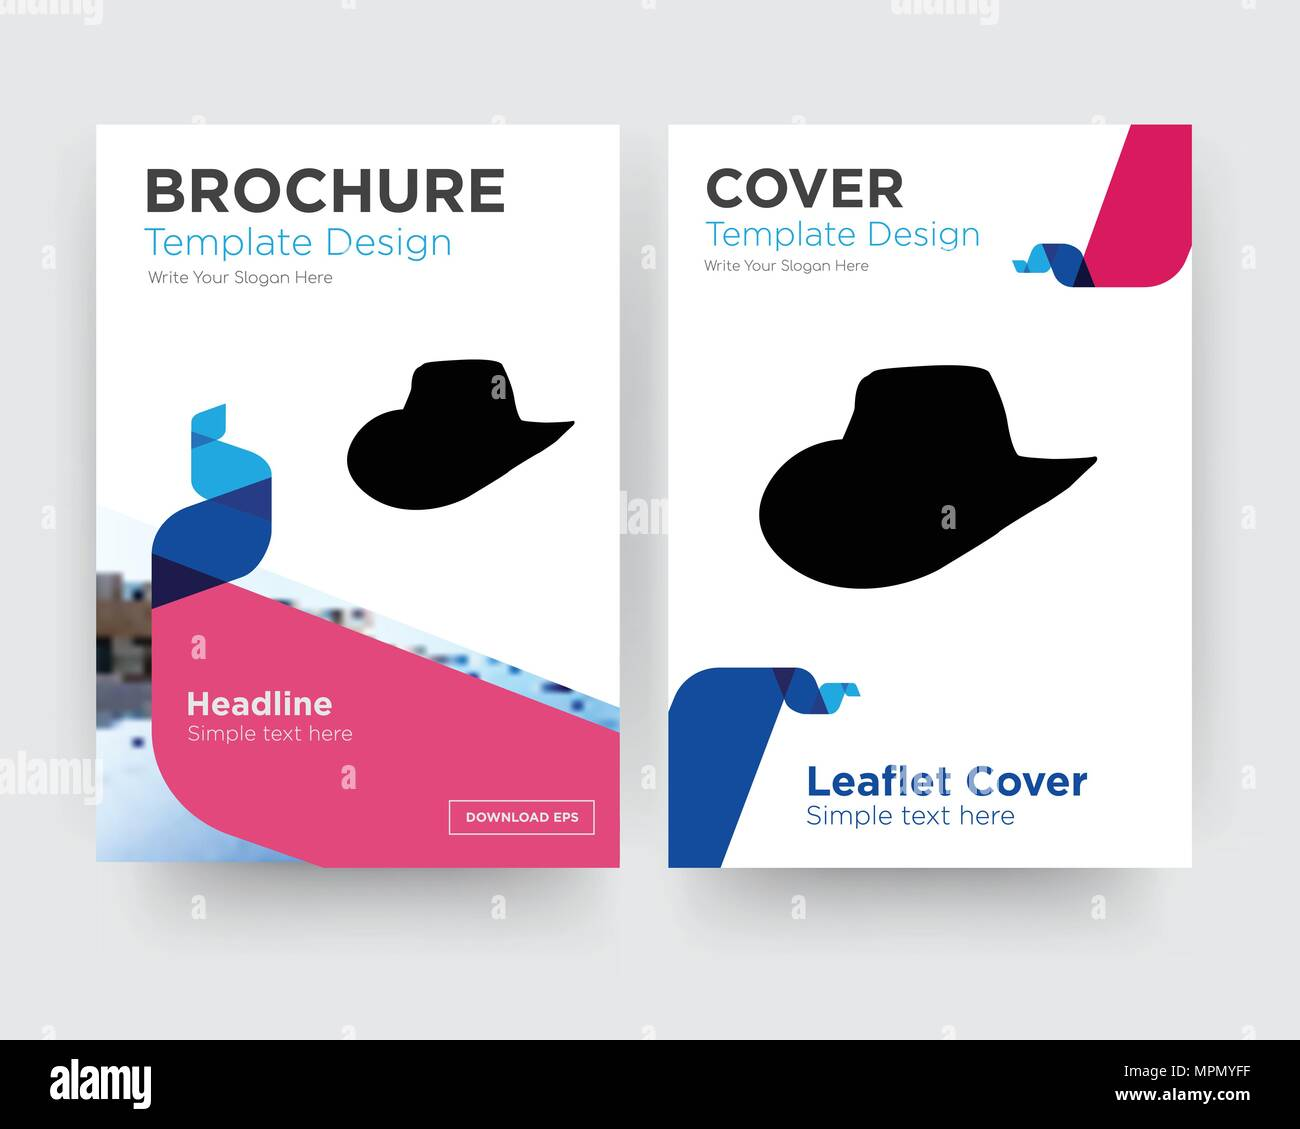 Cowboy Hat Brochure Flyer Design Template With Abstract Photo Background Minimalist Trend Business Corporate Roll Up Or Annual Report